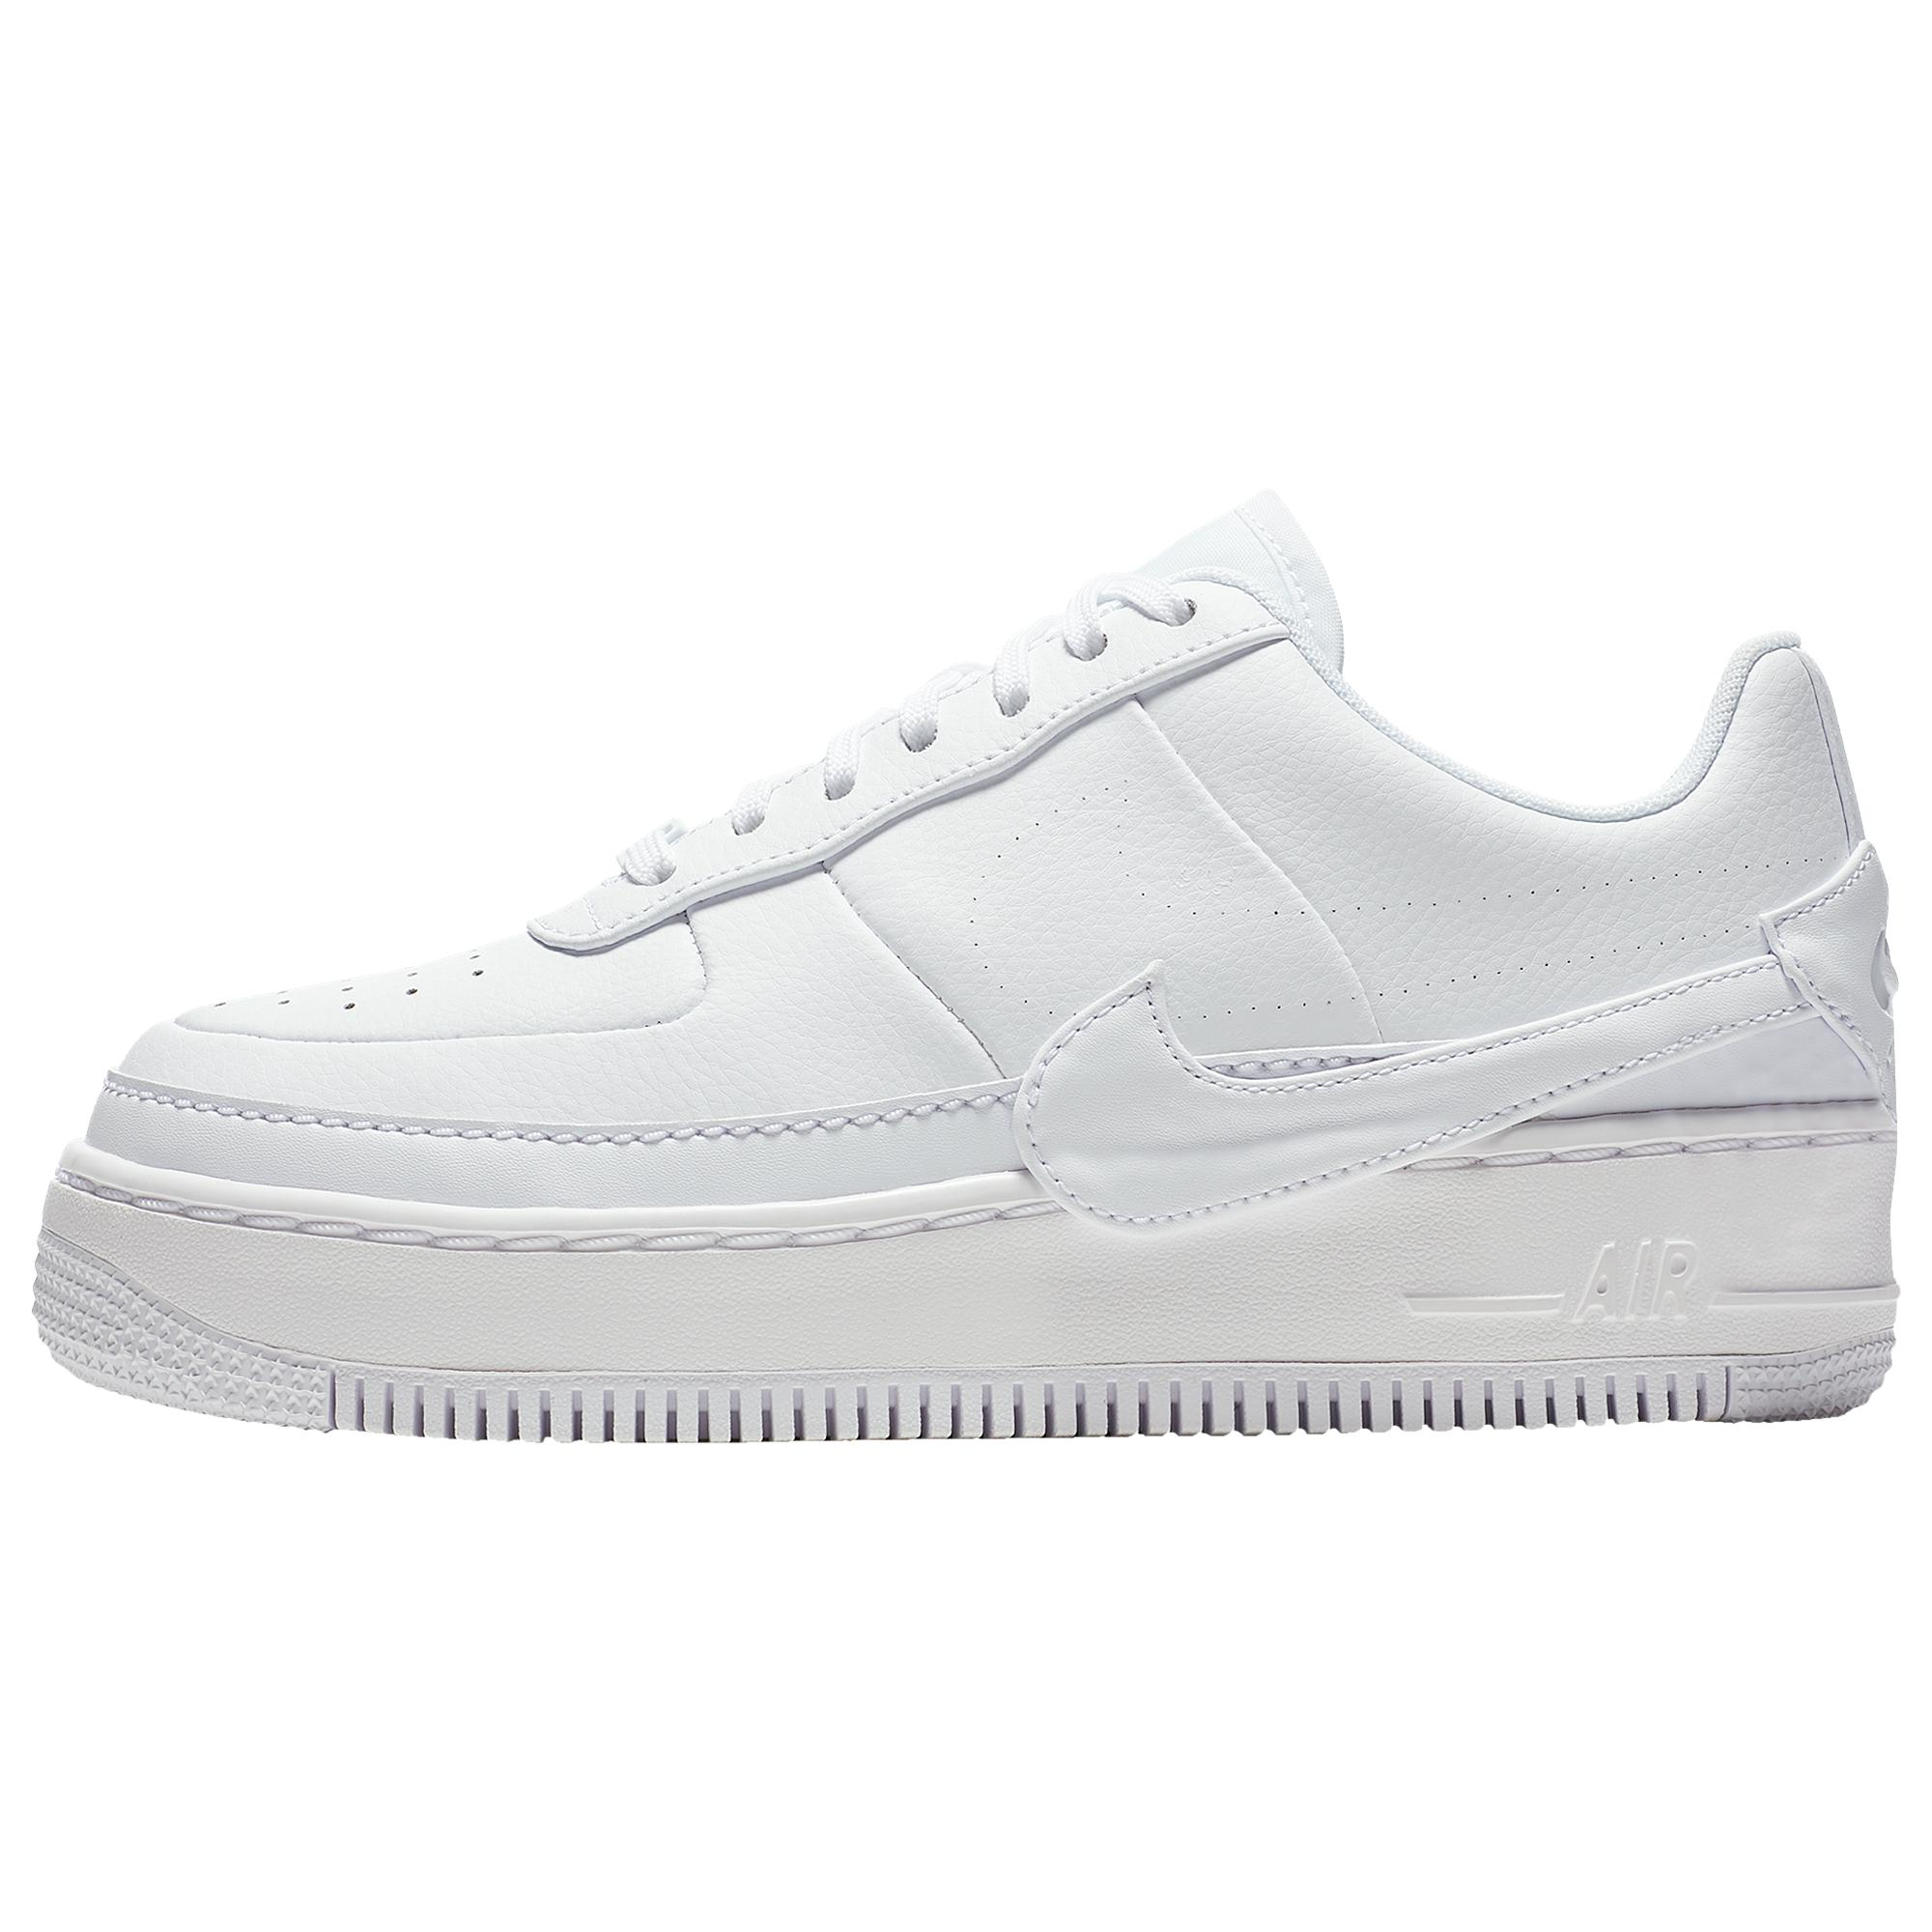 Nike Leather Womens Air Force 1 Jester in White/White (White) - Lyst